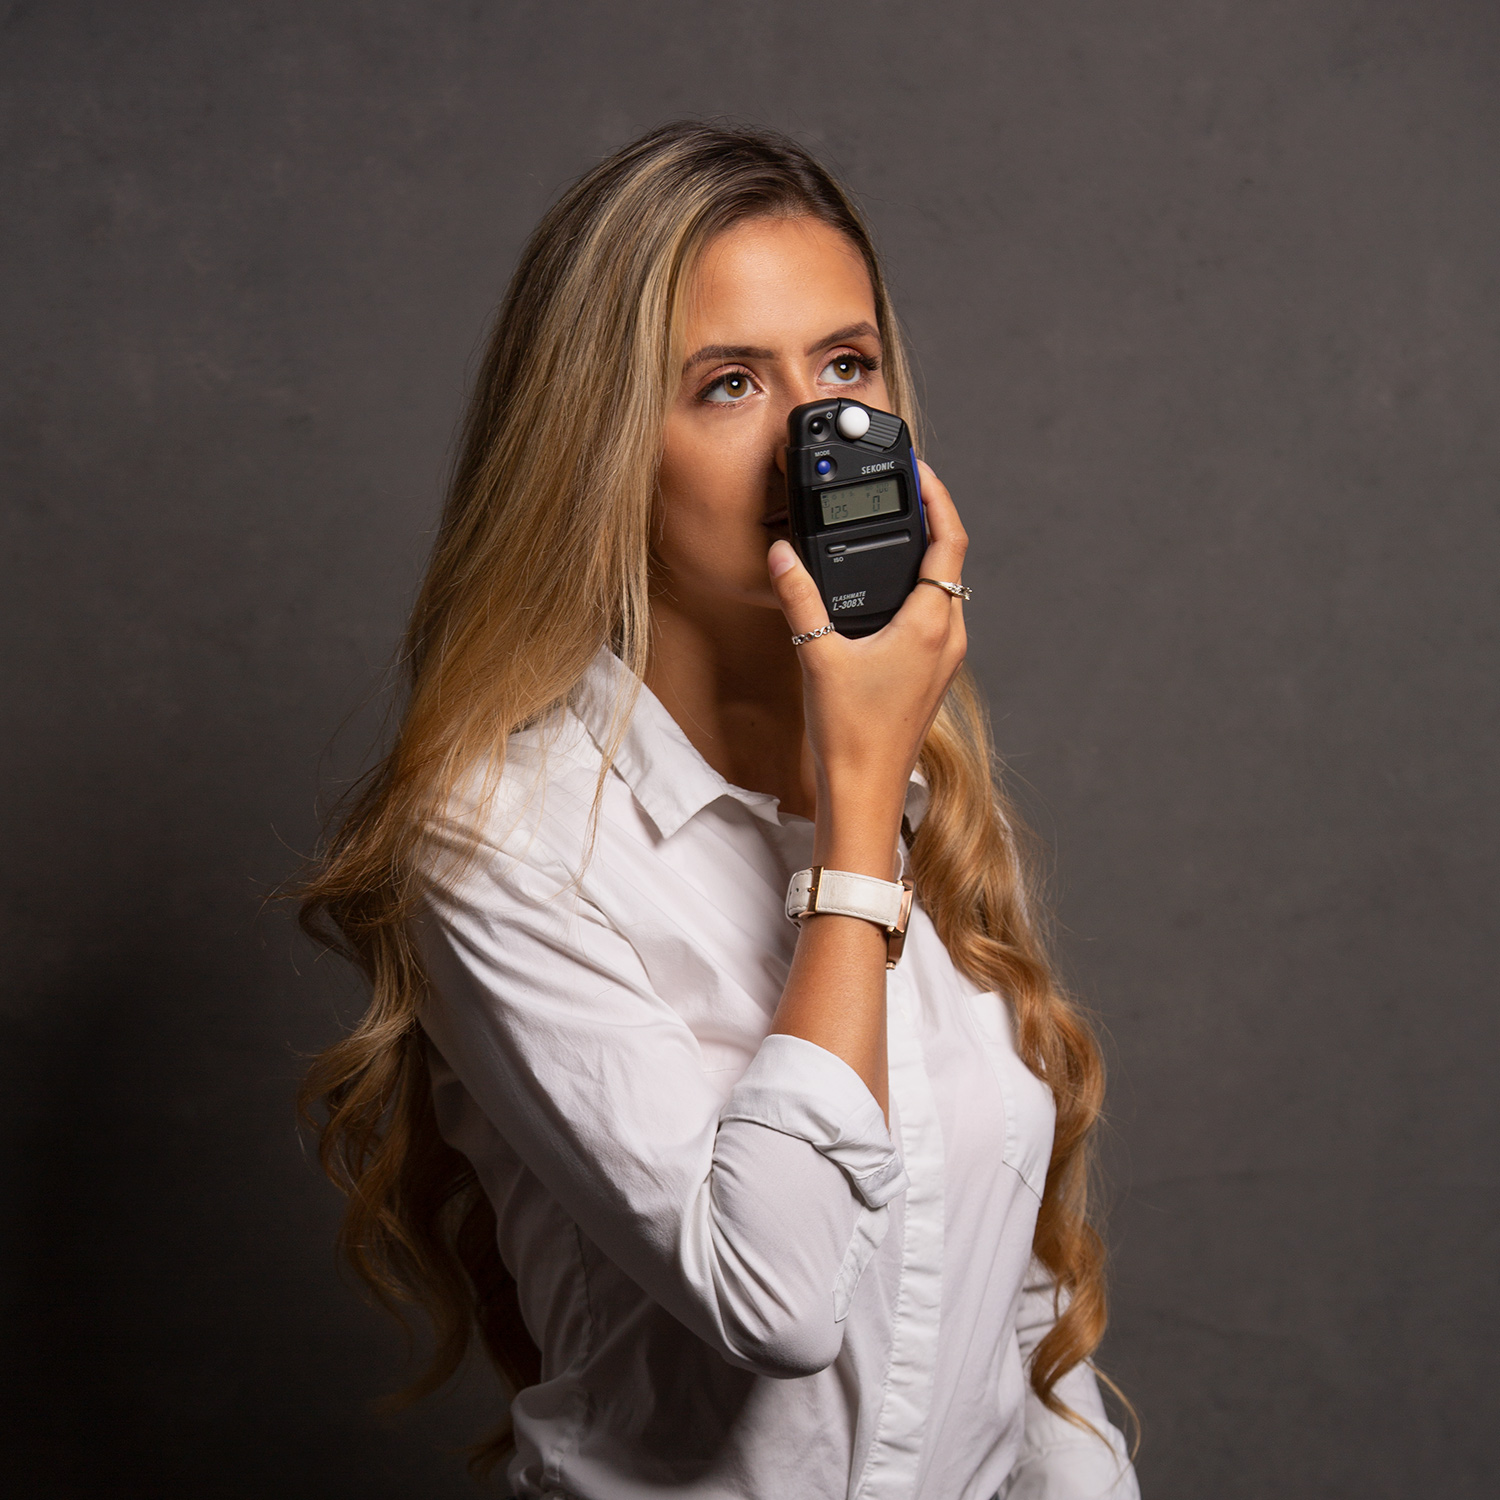 model using a light meter - Why I've Become a Light Meter Convert